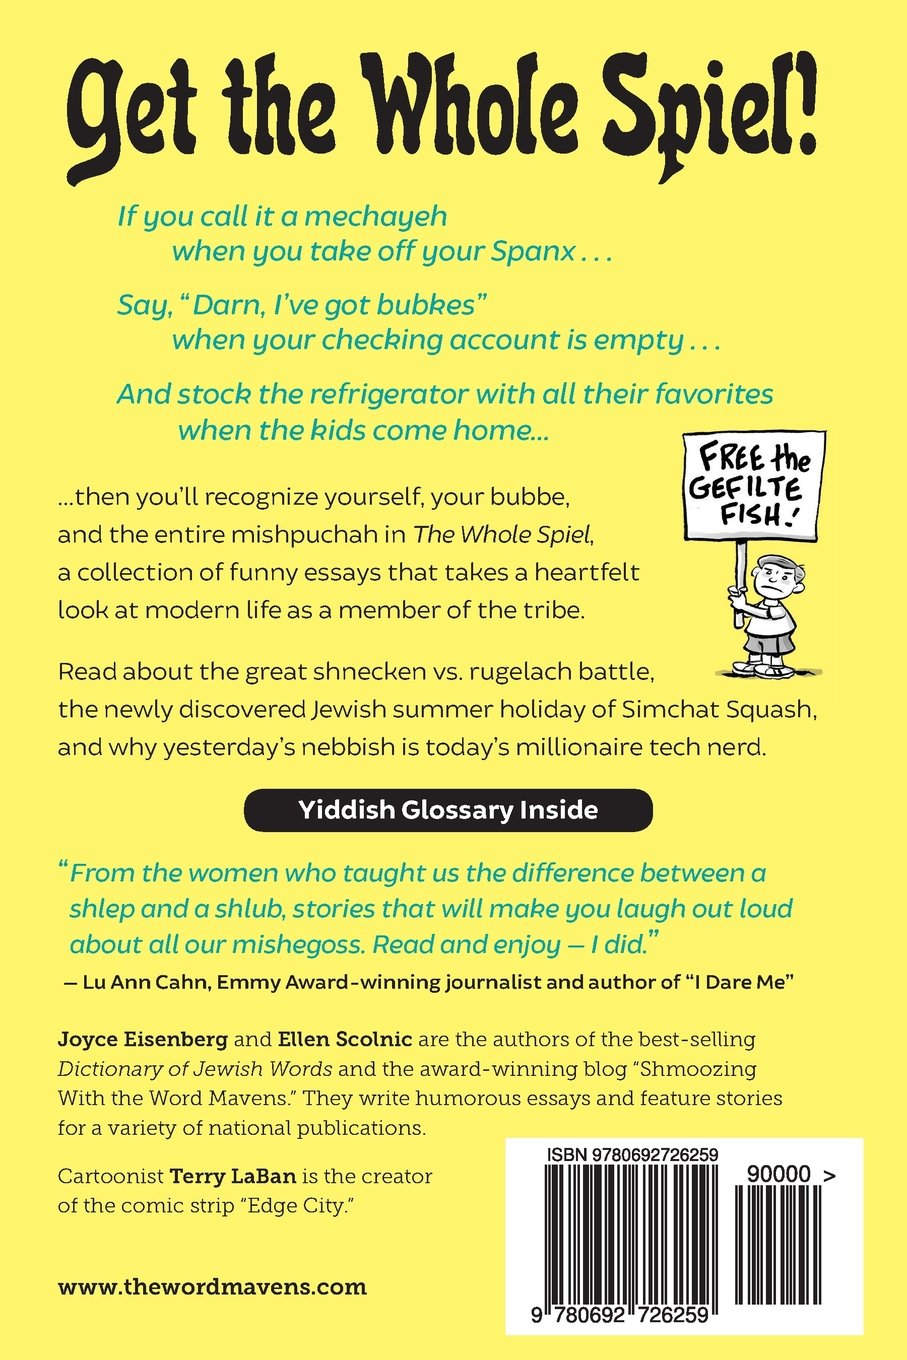 the whole spiel funny essays about digital nudniks seder selfies the whole spiel funny essays about digital nudniks seder selfies and chicken soup memories joyce eisenberg ellen scolnic terry laban 9780692726259